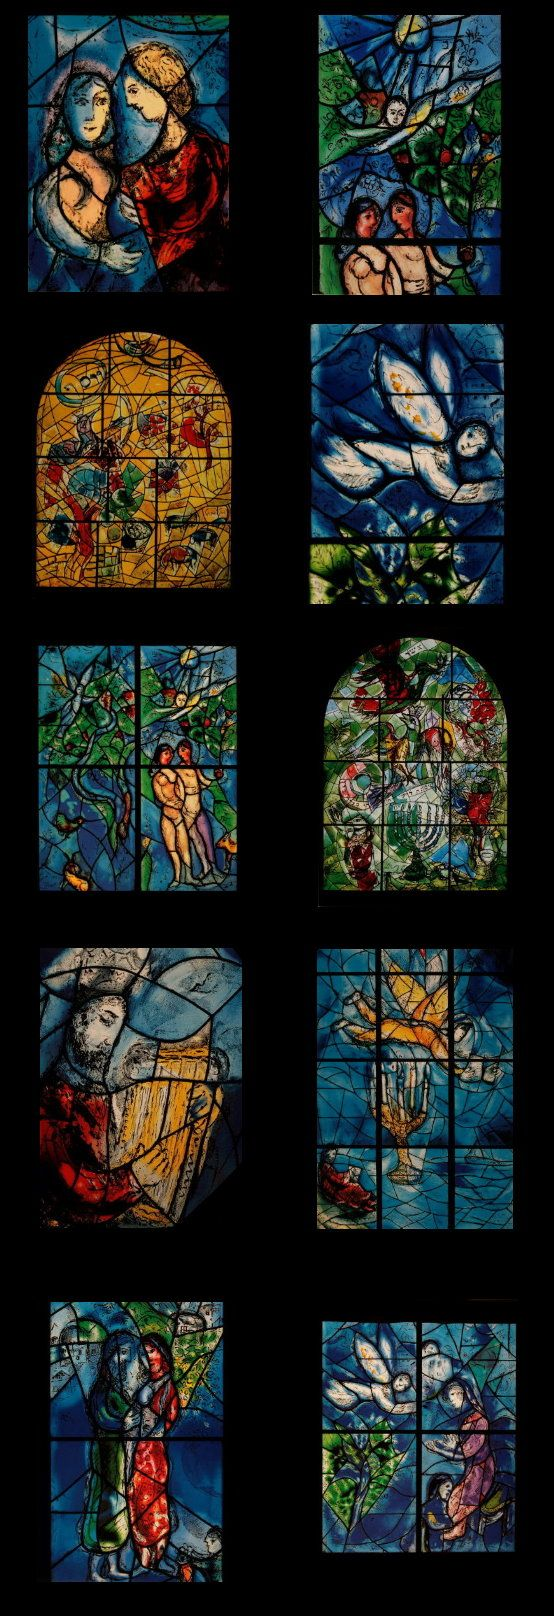 Marc Chagall - Between Surrealism & NeoPrimitivism - Vitraux - Stained Glass